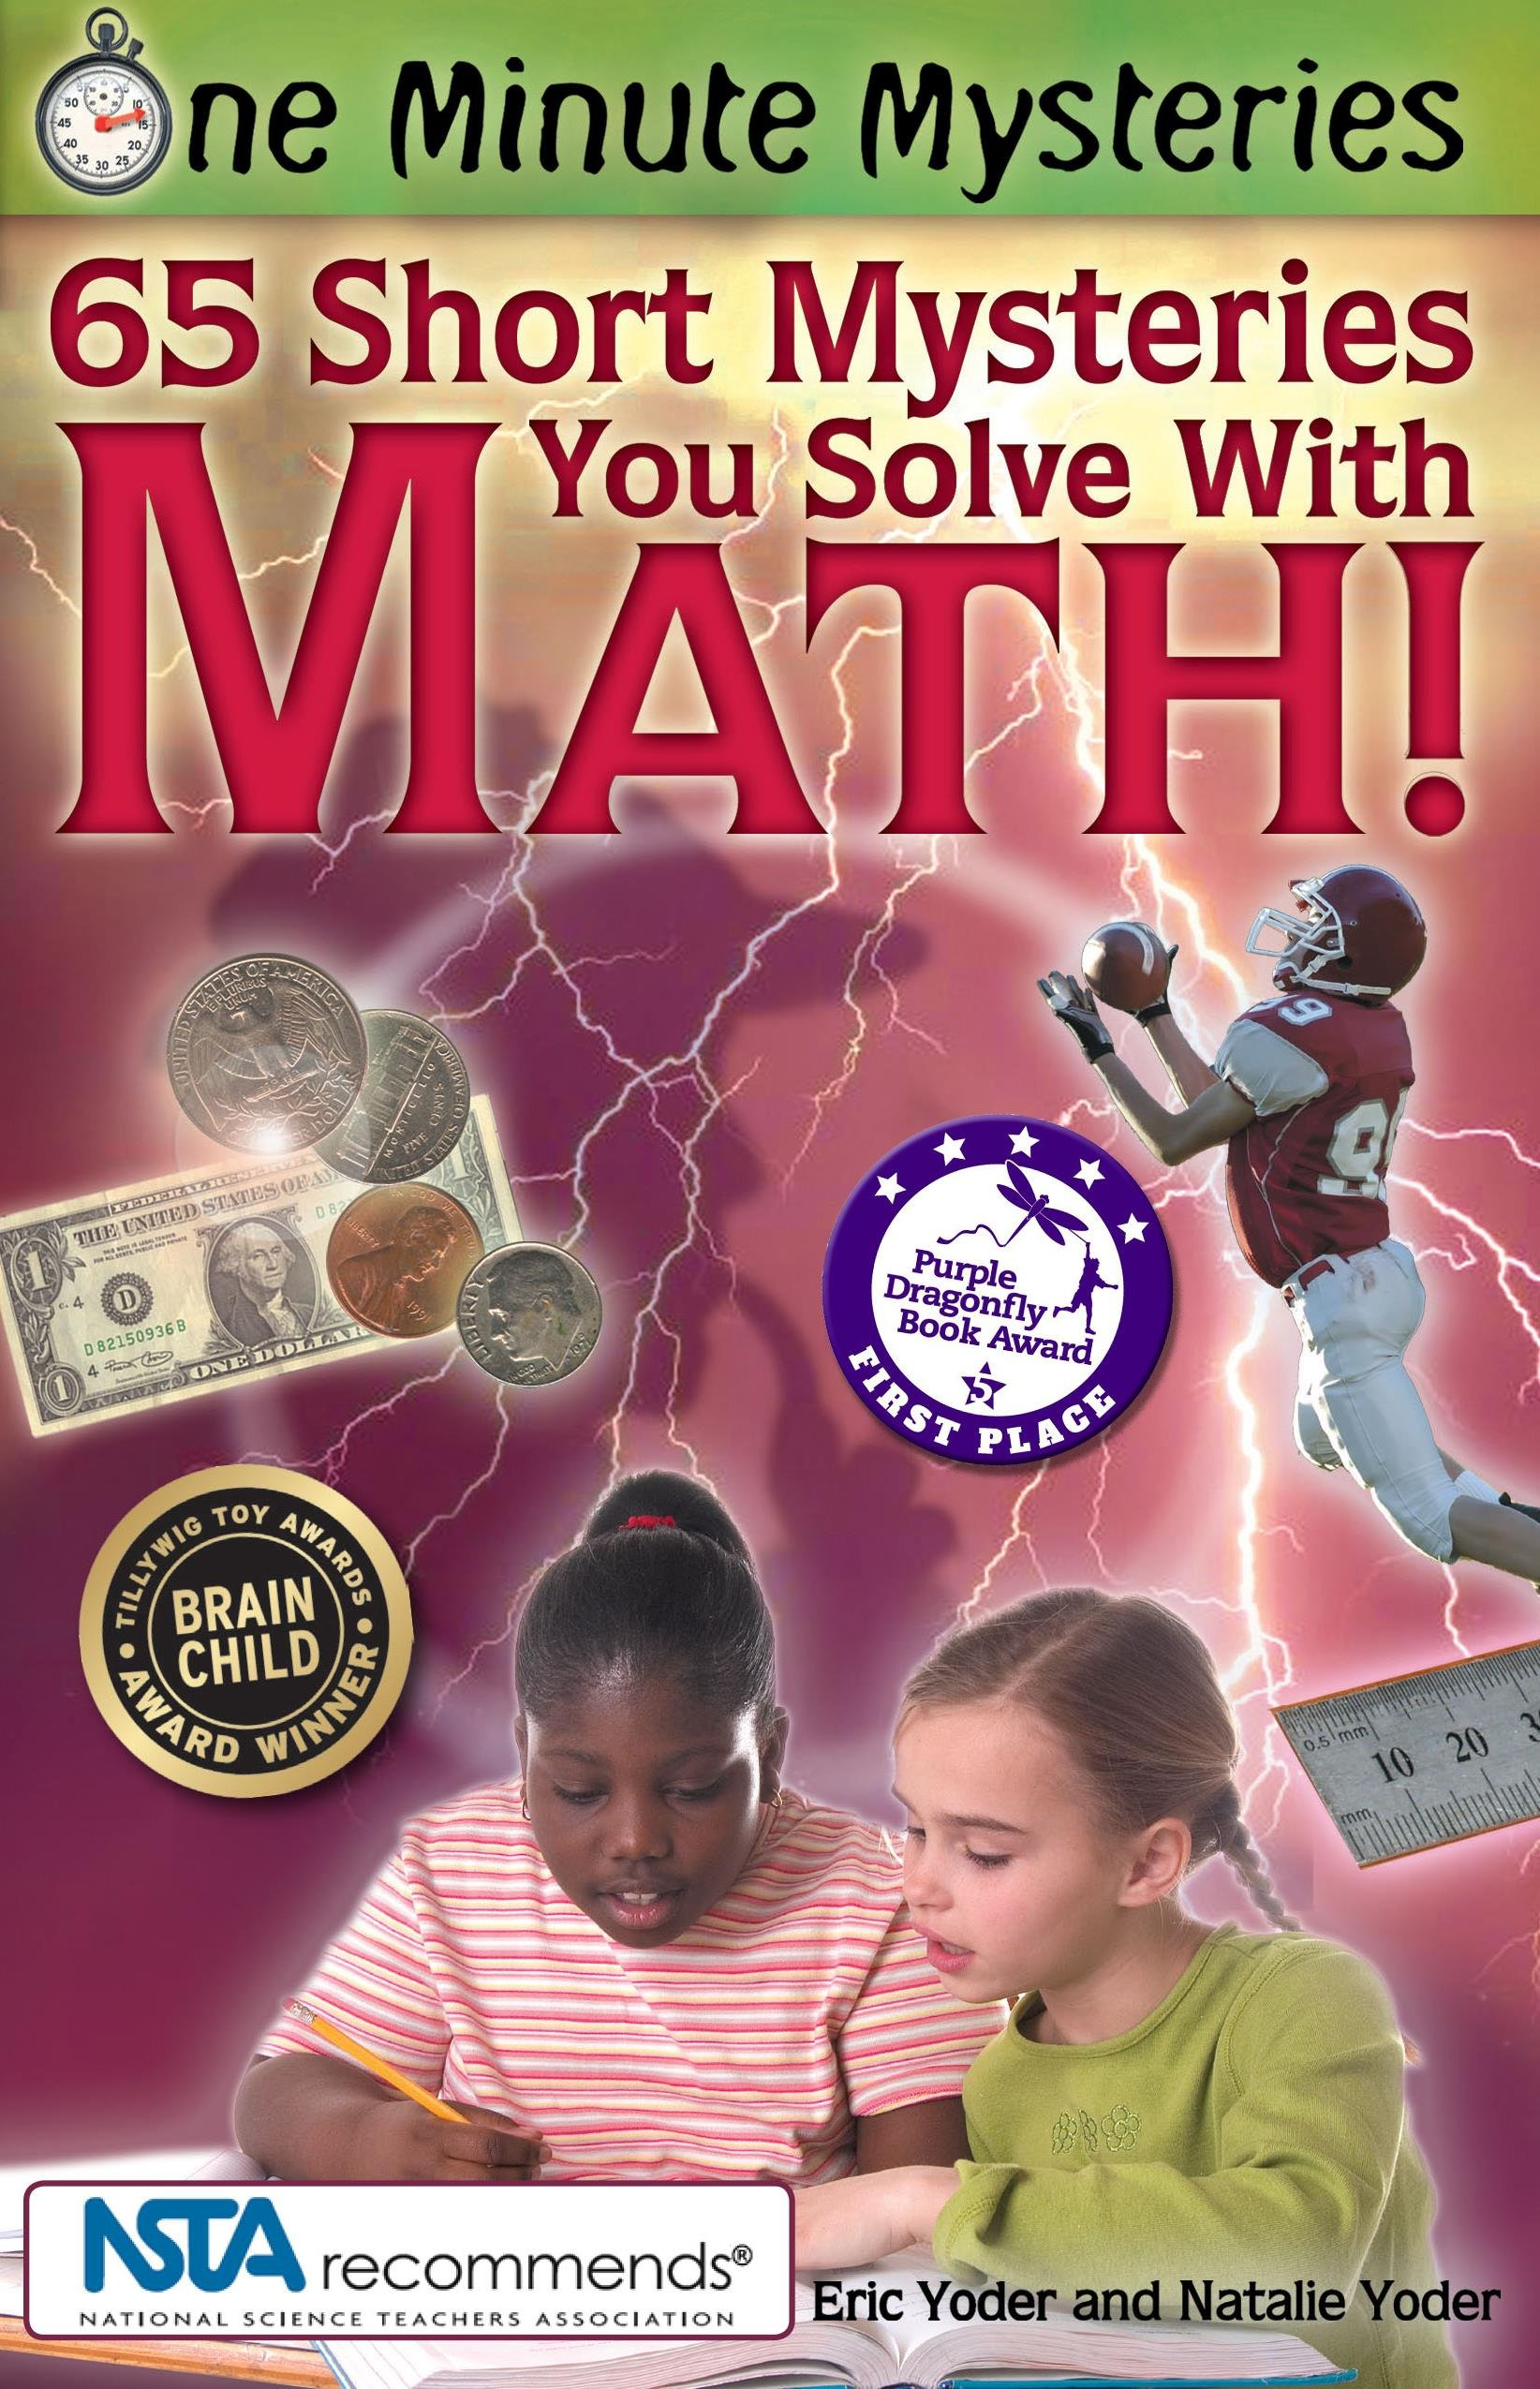 One Minute Mysteries: 65 Short Mysteries You Solve with Math!: Eric Yoder,  Natalie Yoder: 9780967802008: Amazon.com: Books